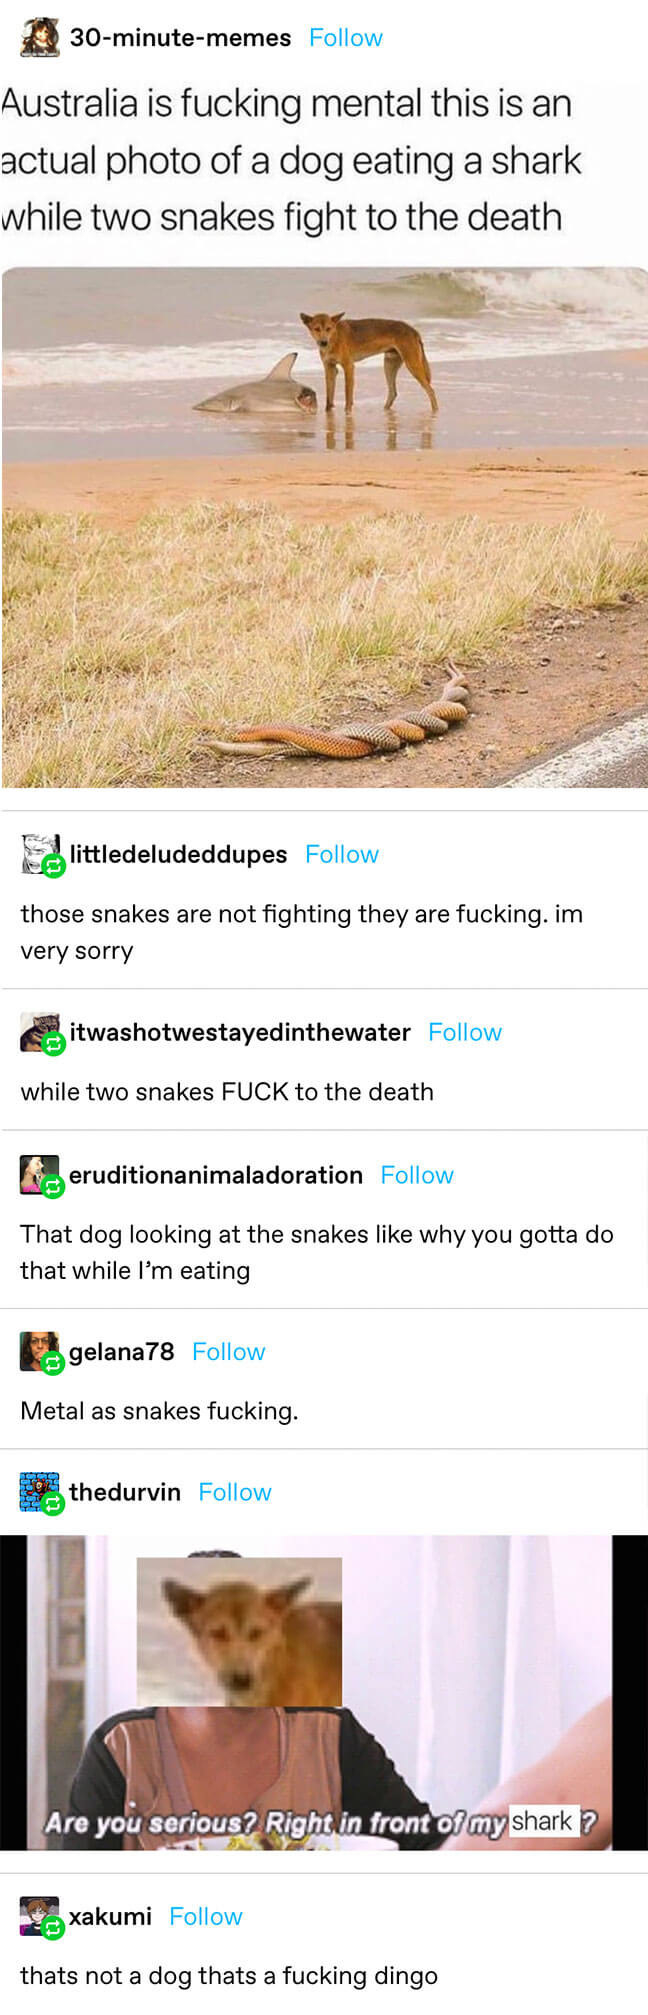 everyone comments on a dog eating a piece of dead shark while 2 snakes fight, until it's clarified that the snakes are having sex and the dog is a dingo